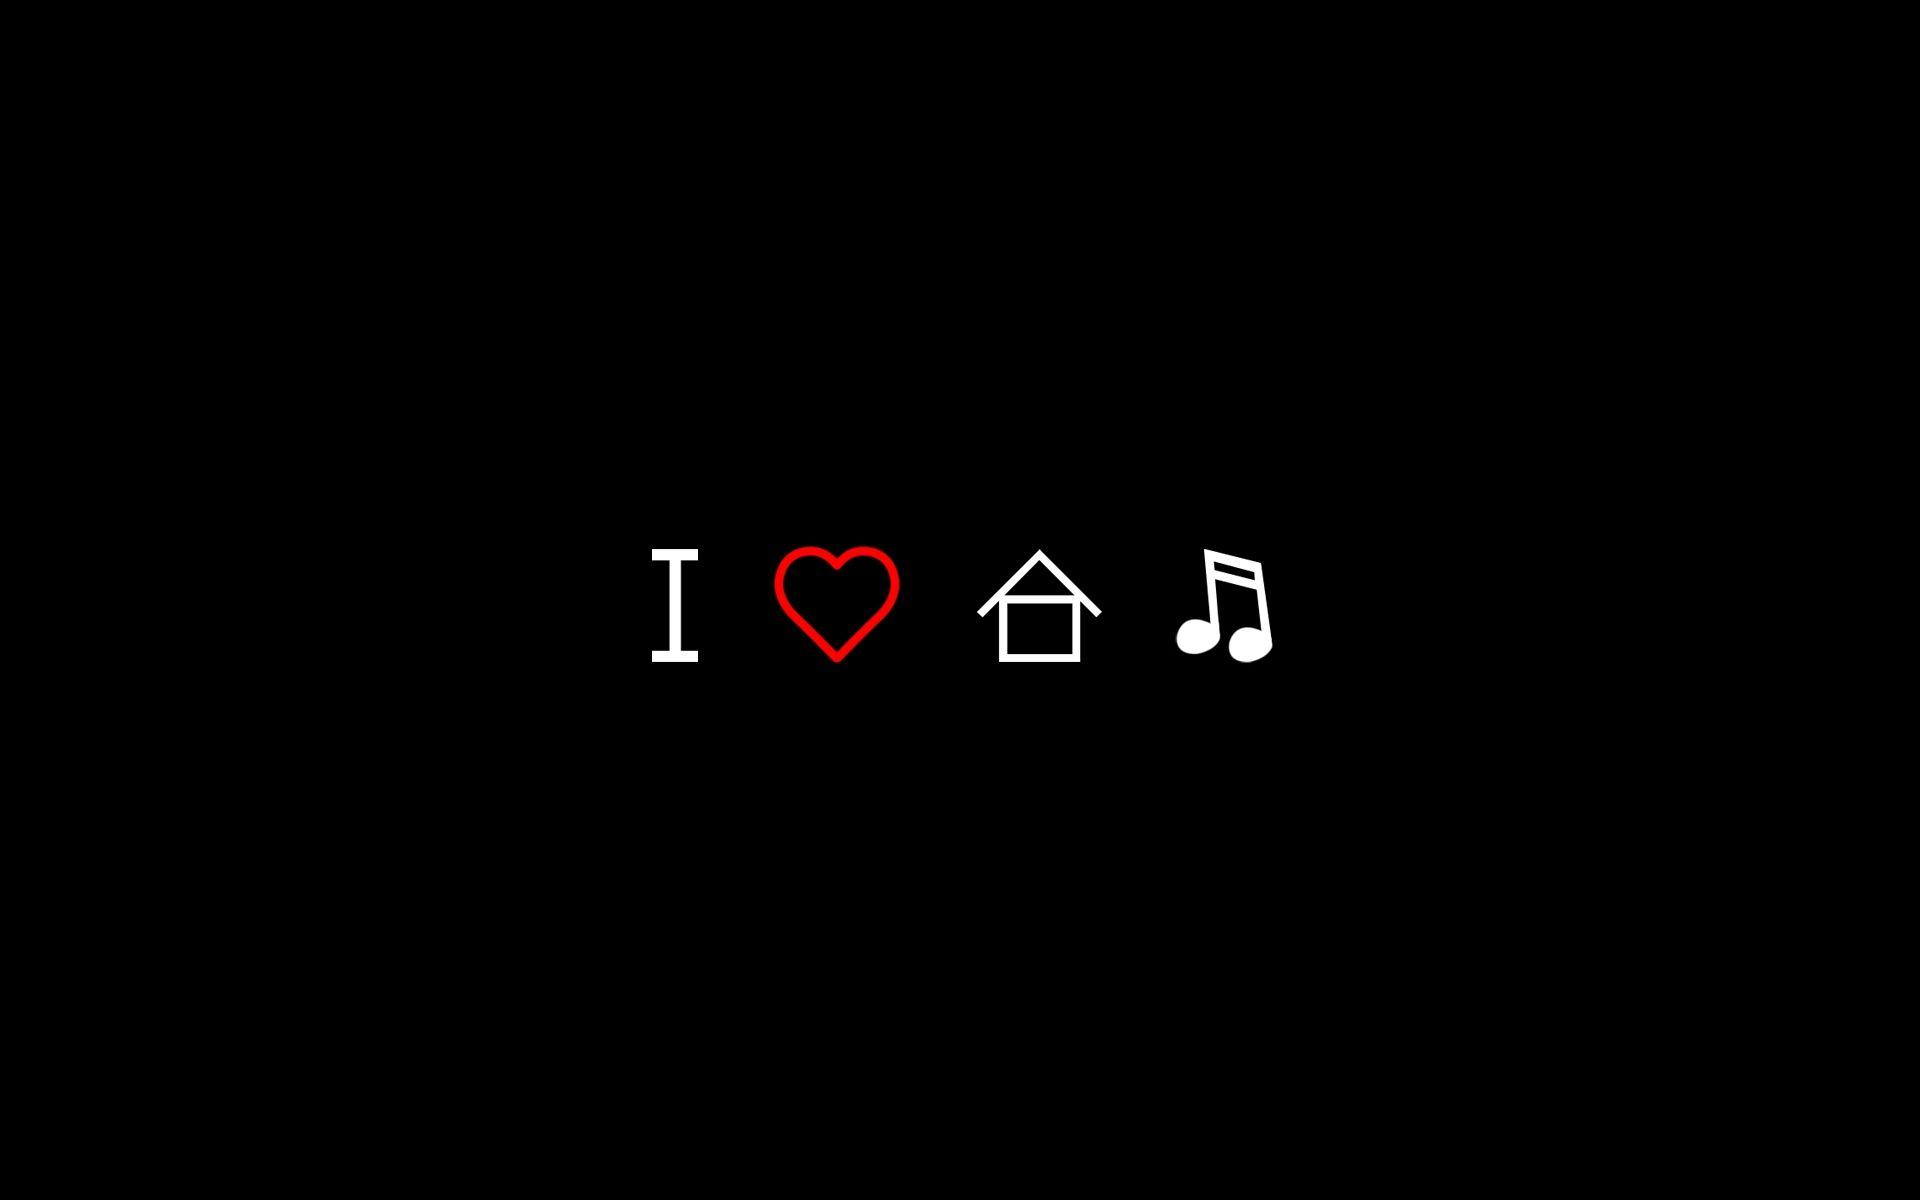 I love house music wallpapers wallpaper cave for My house house music